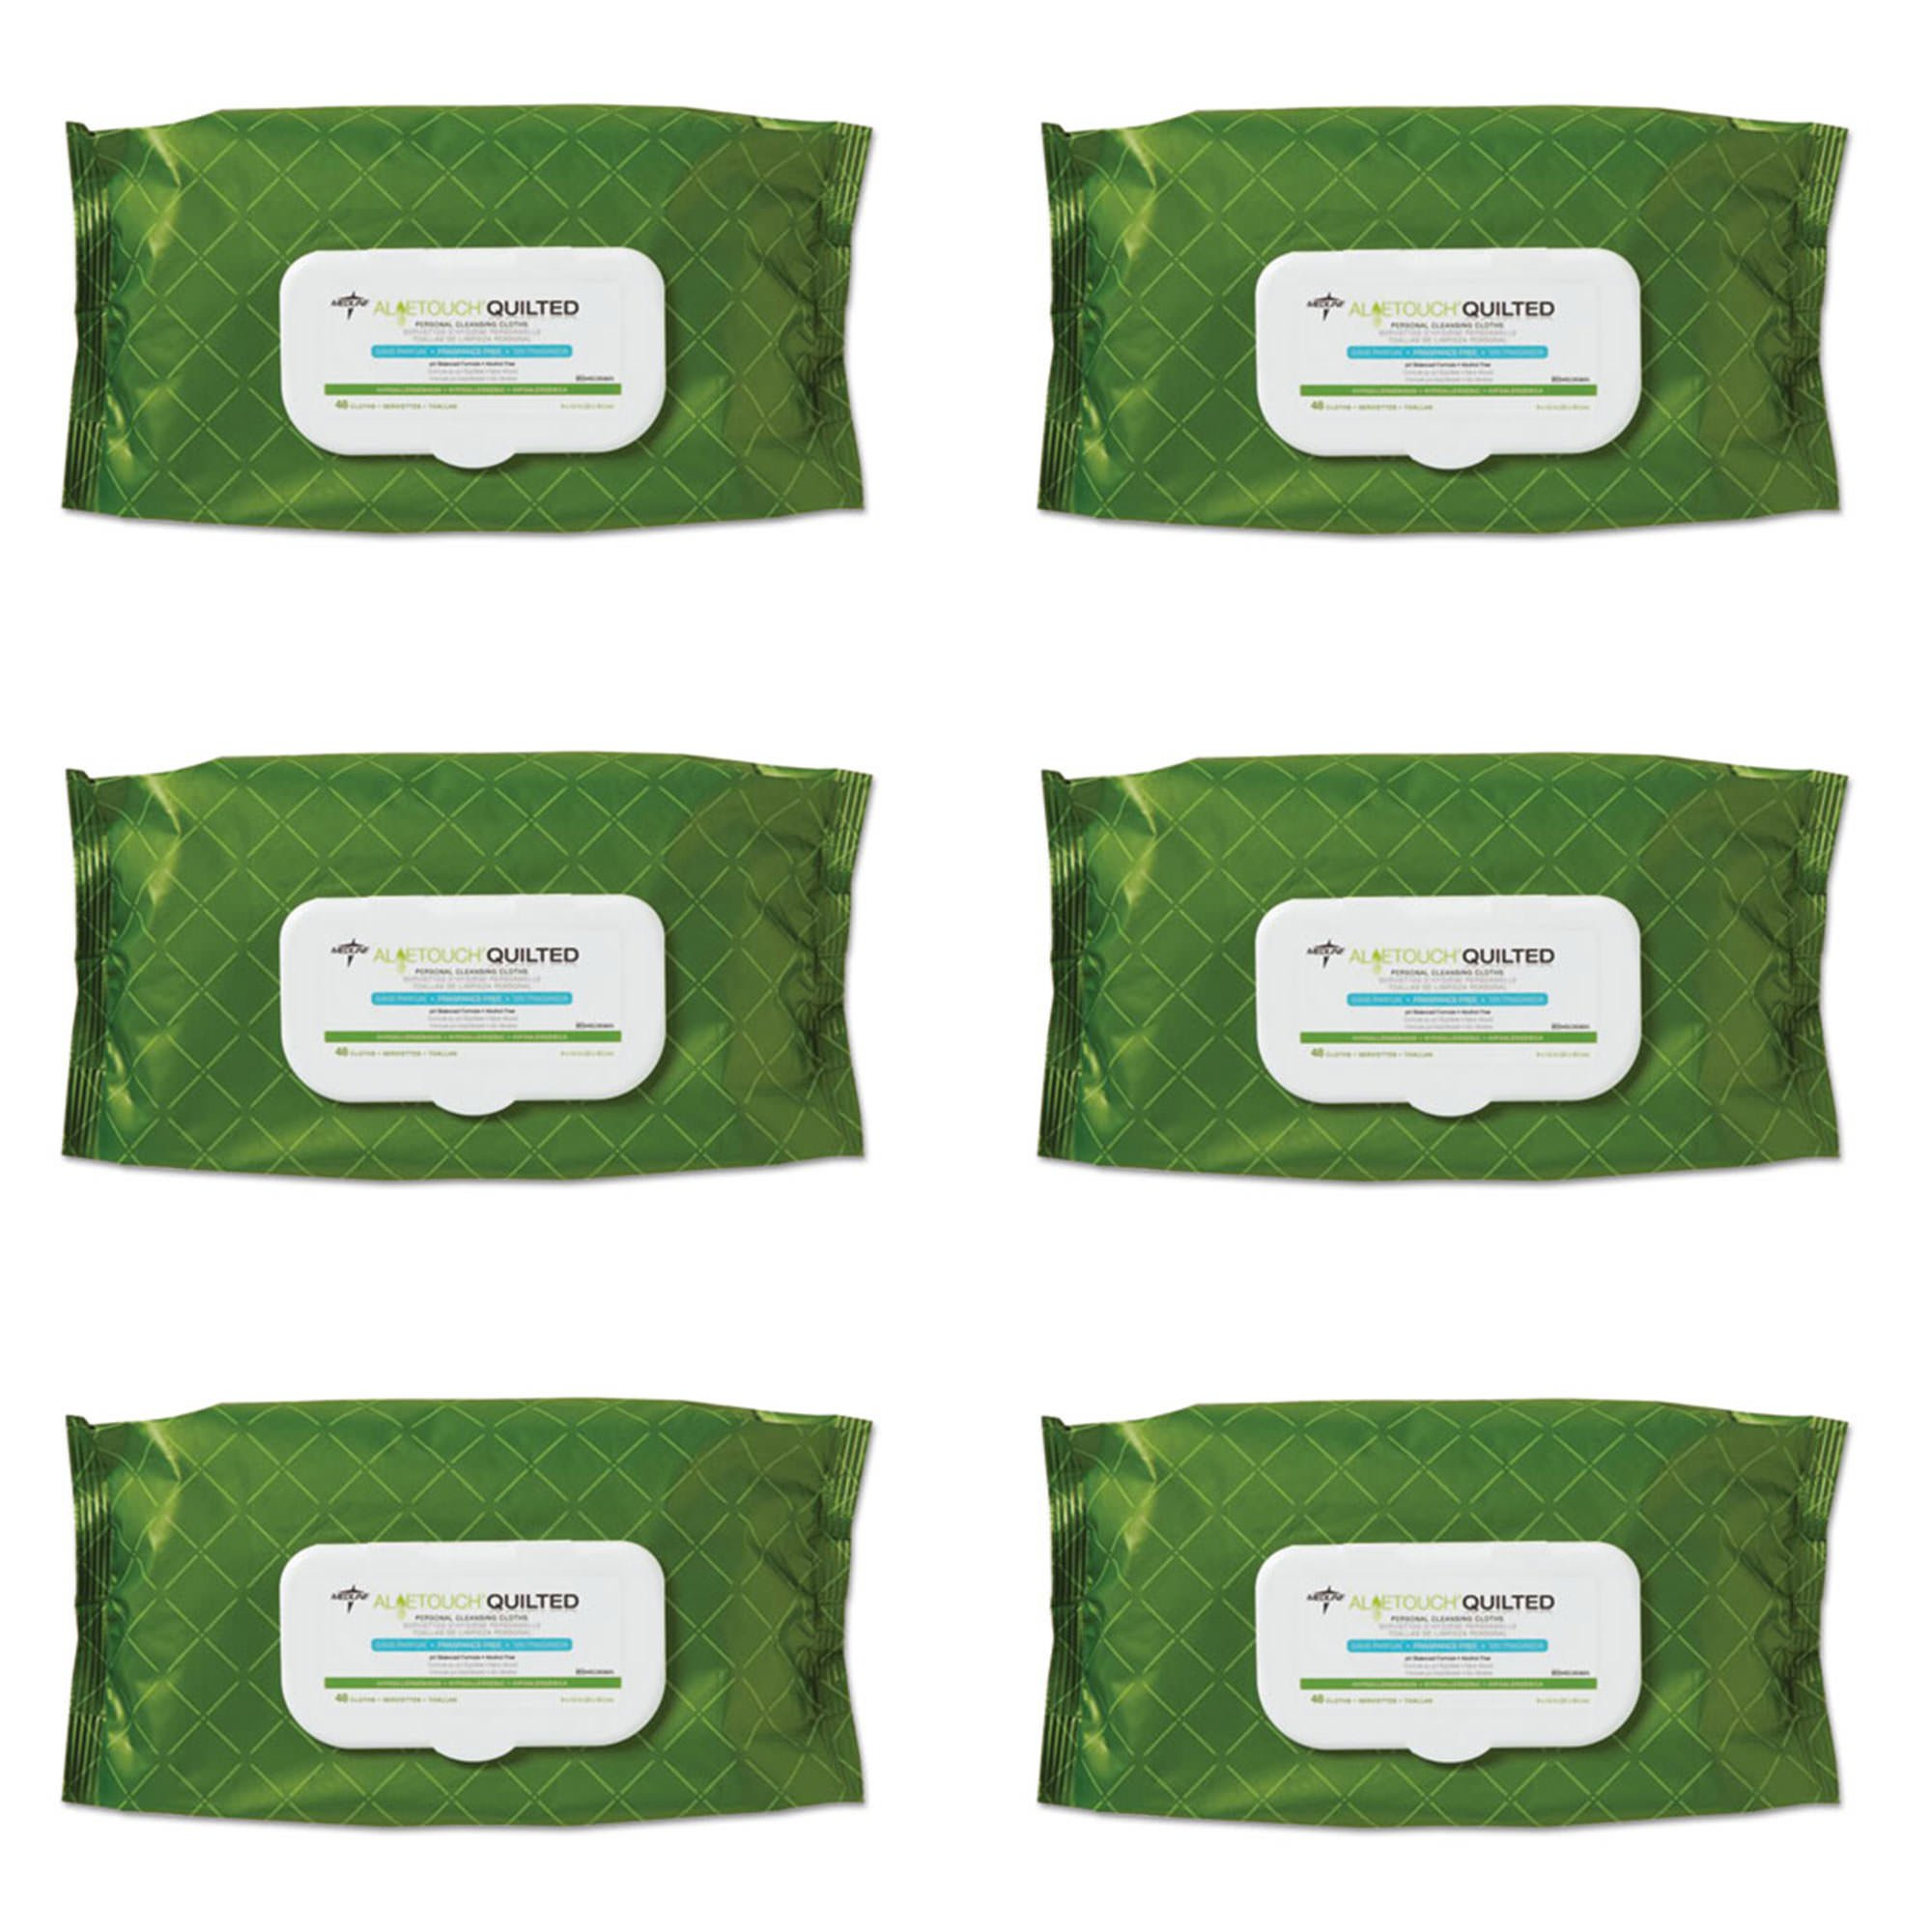 Medline MSC263625H AloeTouch Quilted Heavyweight Personal Cleansing Cloth Wipes, Unscented, 8'' x 12'' Adult Large Incontinence Wipes, Pack of 48, 6 Packs